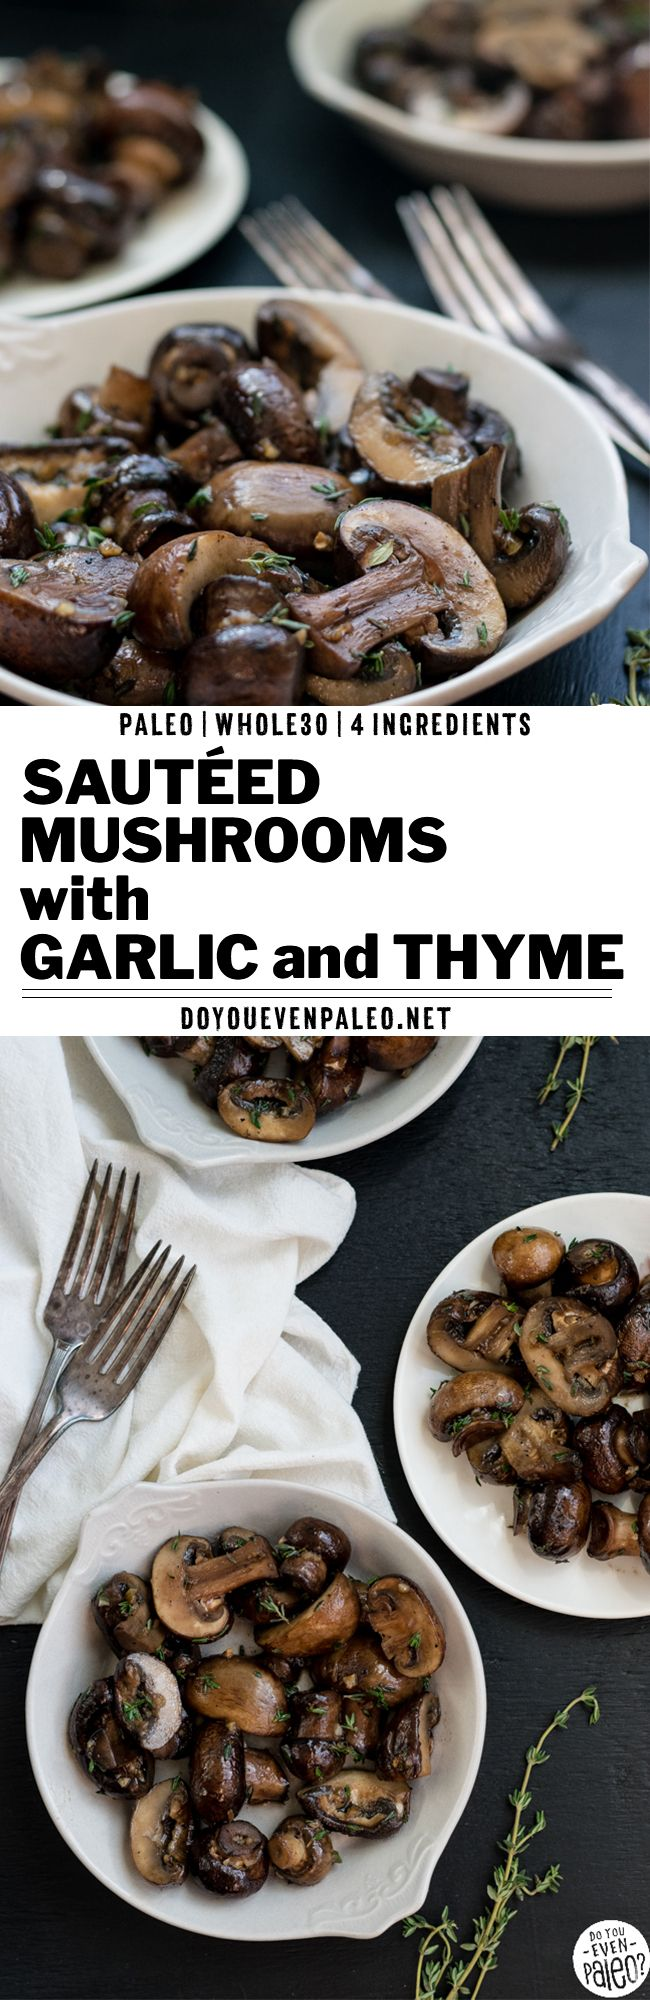 This easy mushroom recipe takes less than 10 minutes and uses only 4 ingredients. With garlic and thyme, this side dish is the perfect accompaniment to steak or chicken. A healthy mushroom recipe that's also paleo, gluten free, Whole30, clean eating, and vegetarian! | DoYouEvenPaleo.net #paleo #doyouevenpaleo #whole30